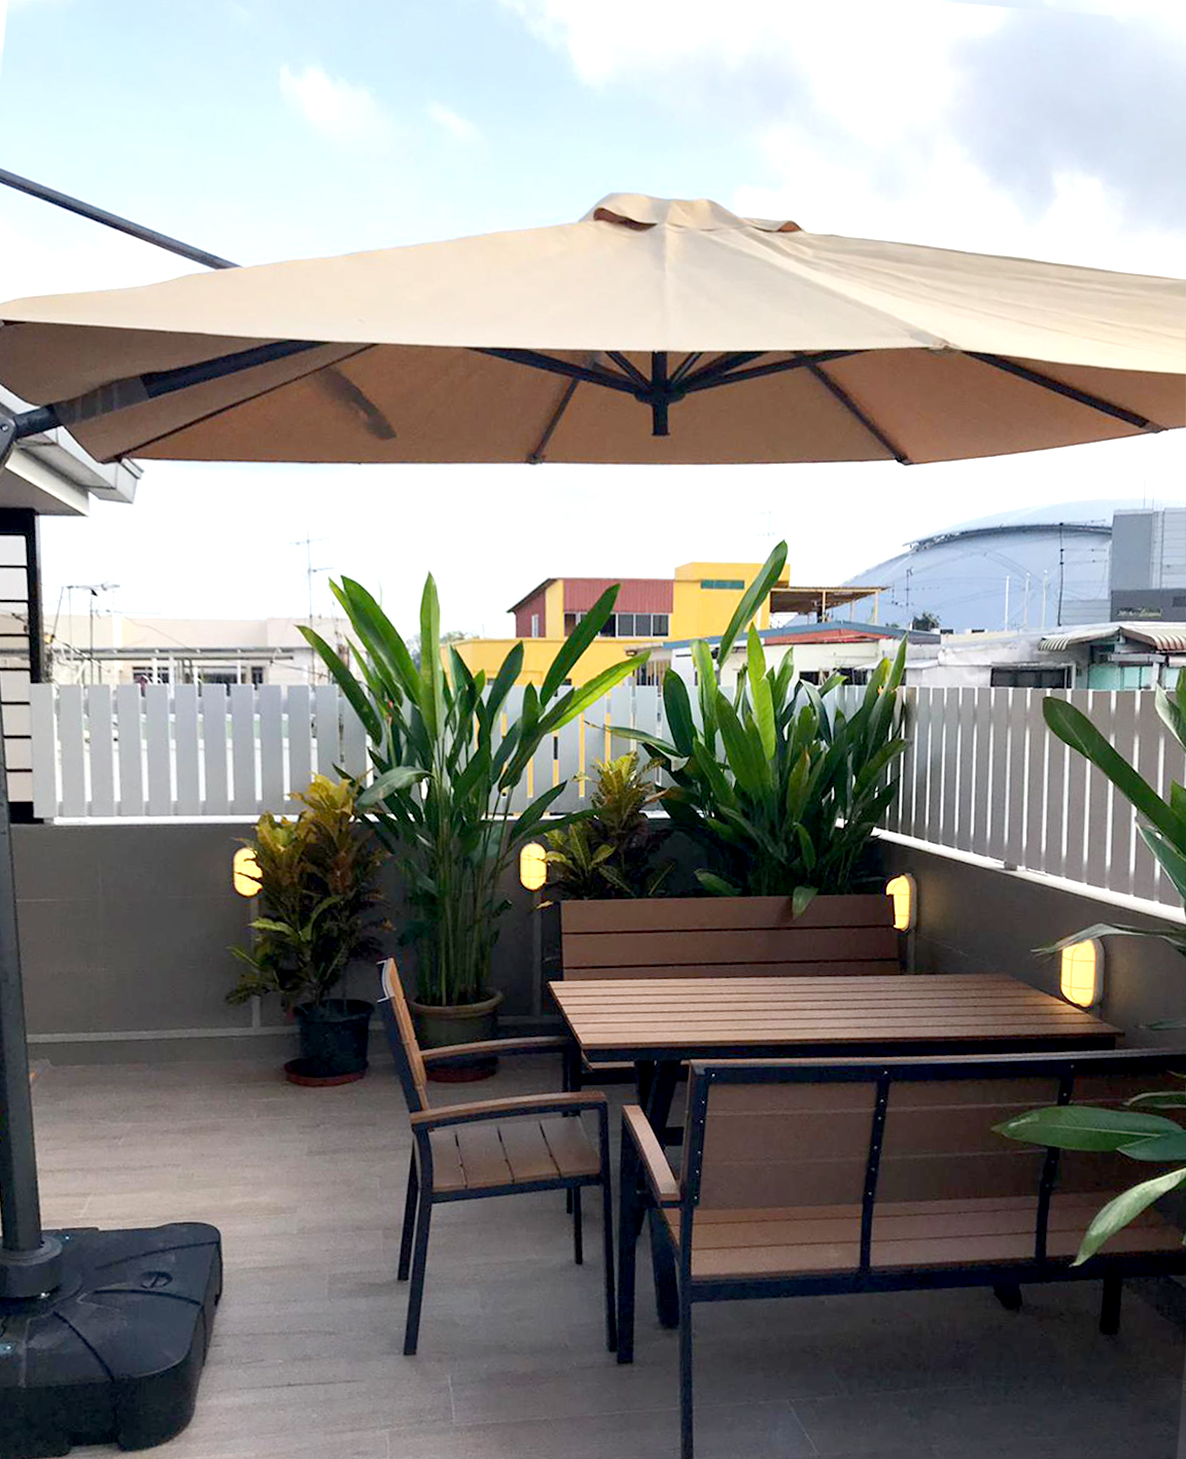 Singapore Motor Tyre Dealers Association - Geylang | Product seen: [Fossil Outdoor Armchair, Fossil Outdoor Bench – Highback & Fossil Outdoor Dining Table - W1400 & Parasol - Side 3300]